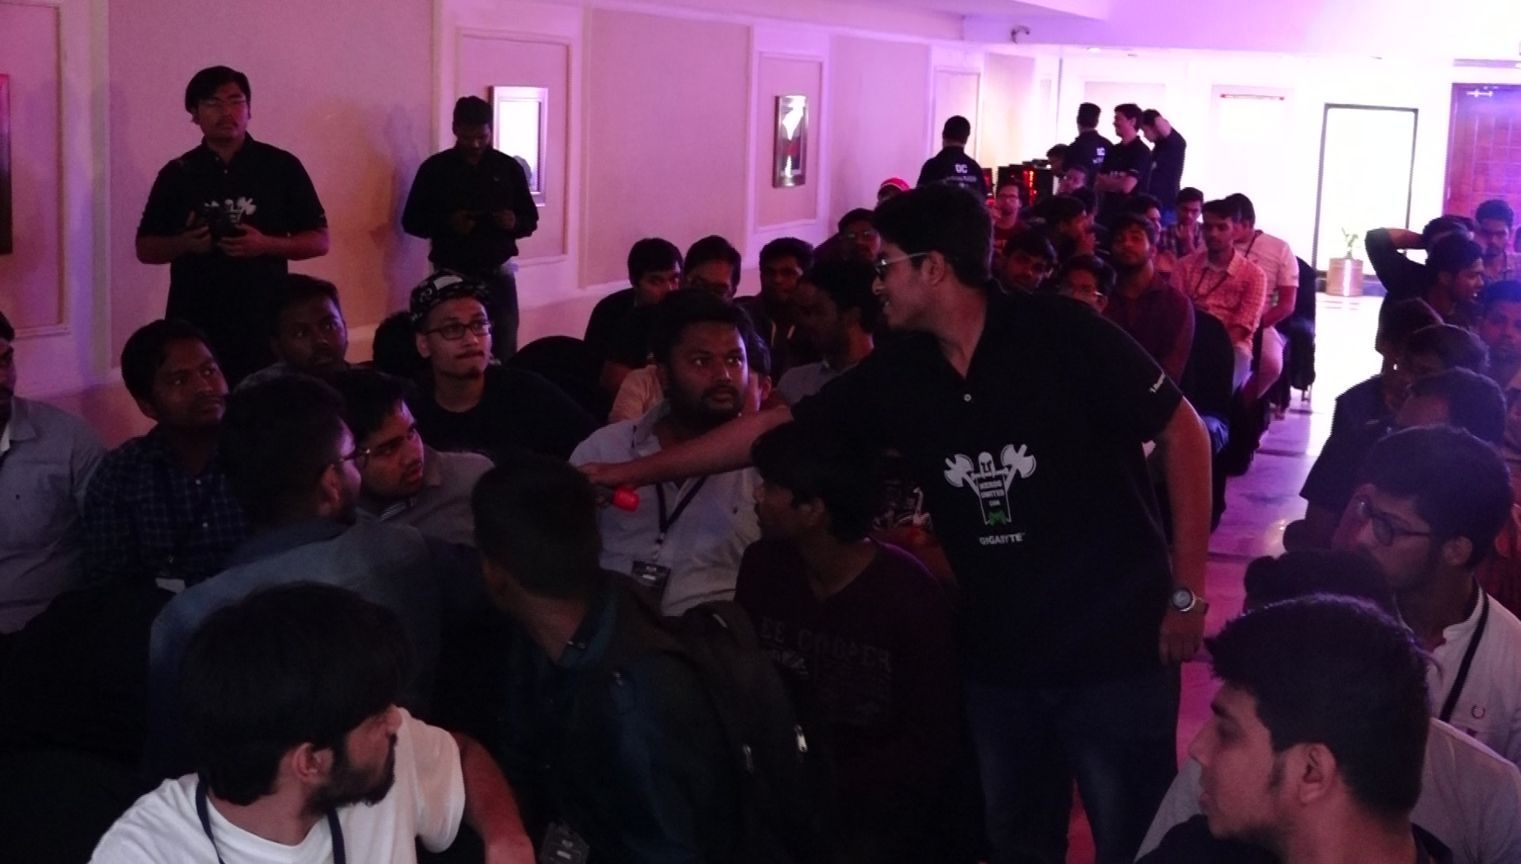 Nerds United Con 2K17: Bhubaneswar Now Becomes A Major Gaming Hub In India 9